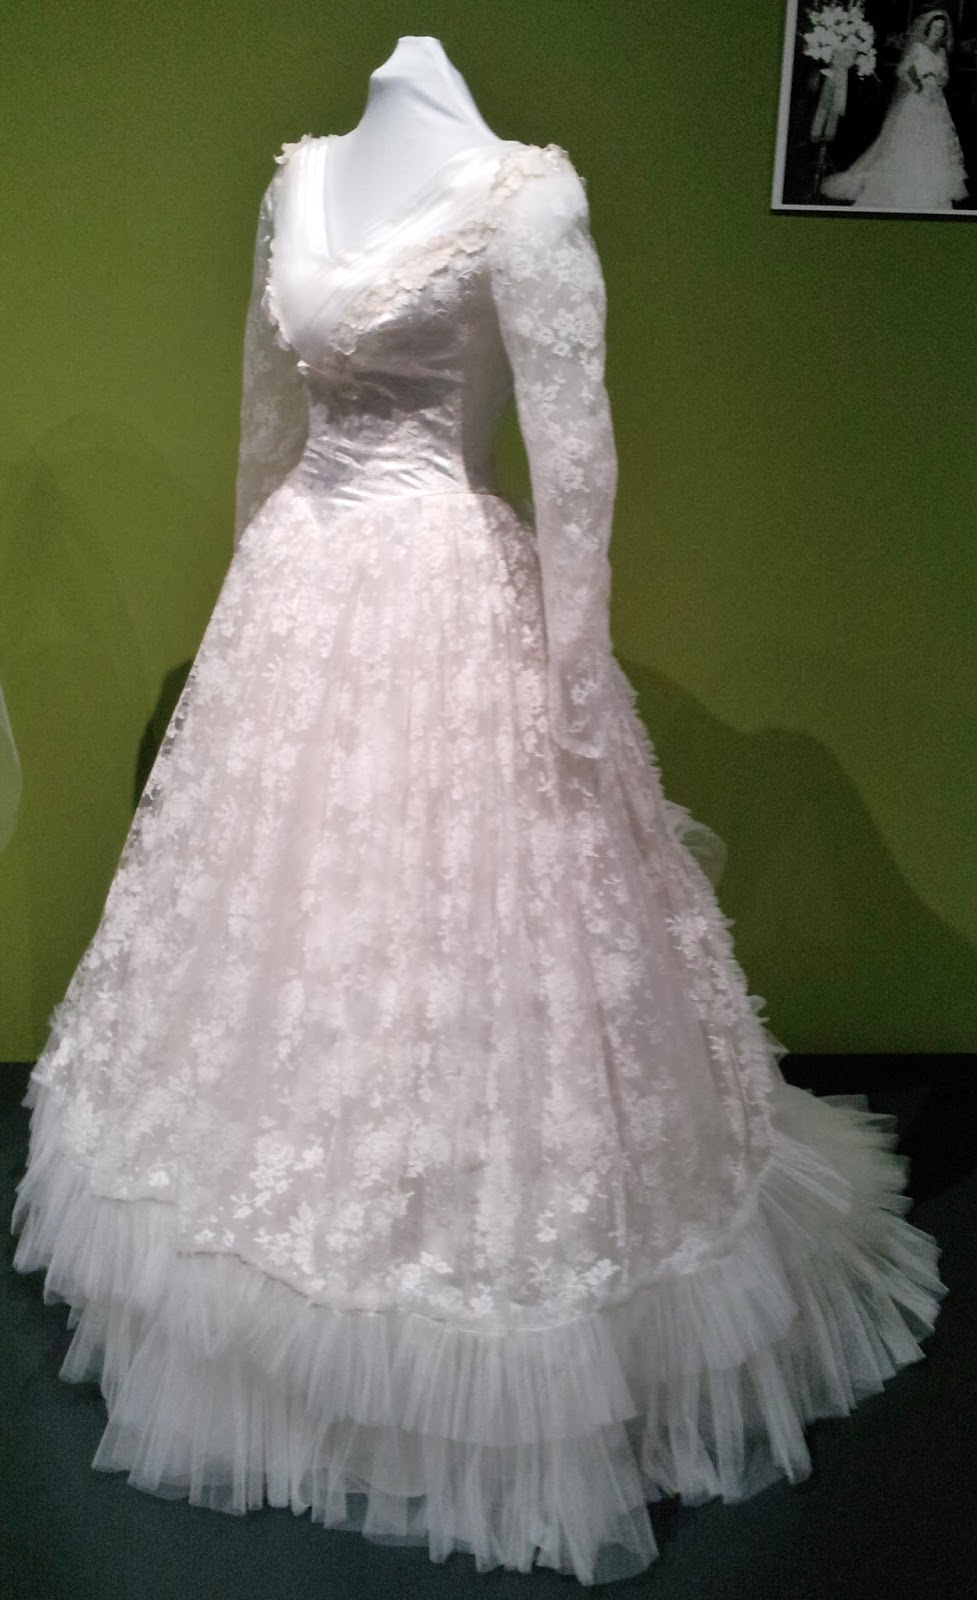 vintage bridal gowns on view at macy's wedding dresses Now the original building is owned by Macy s who recently rehabilitated the architecturally significant building